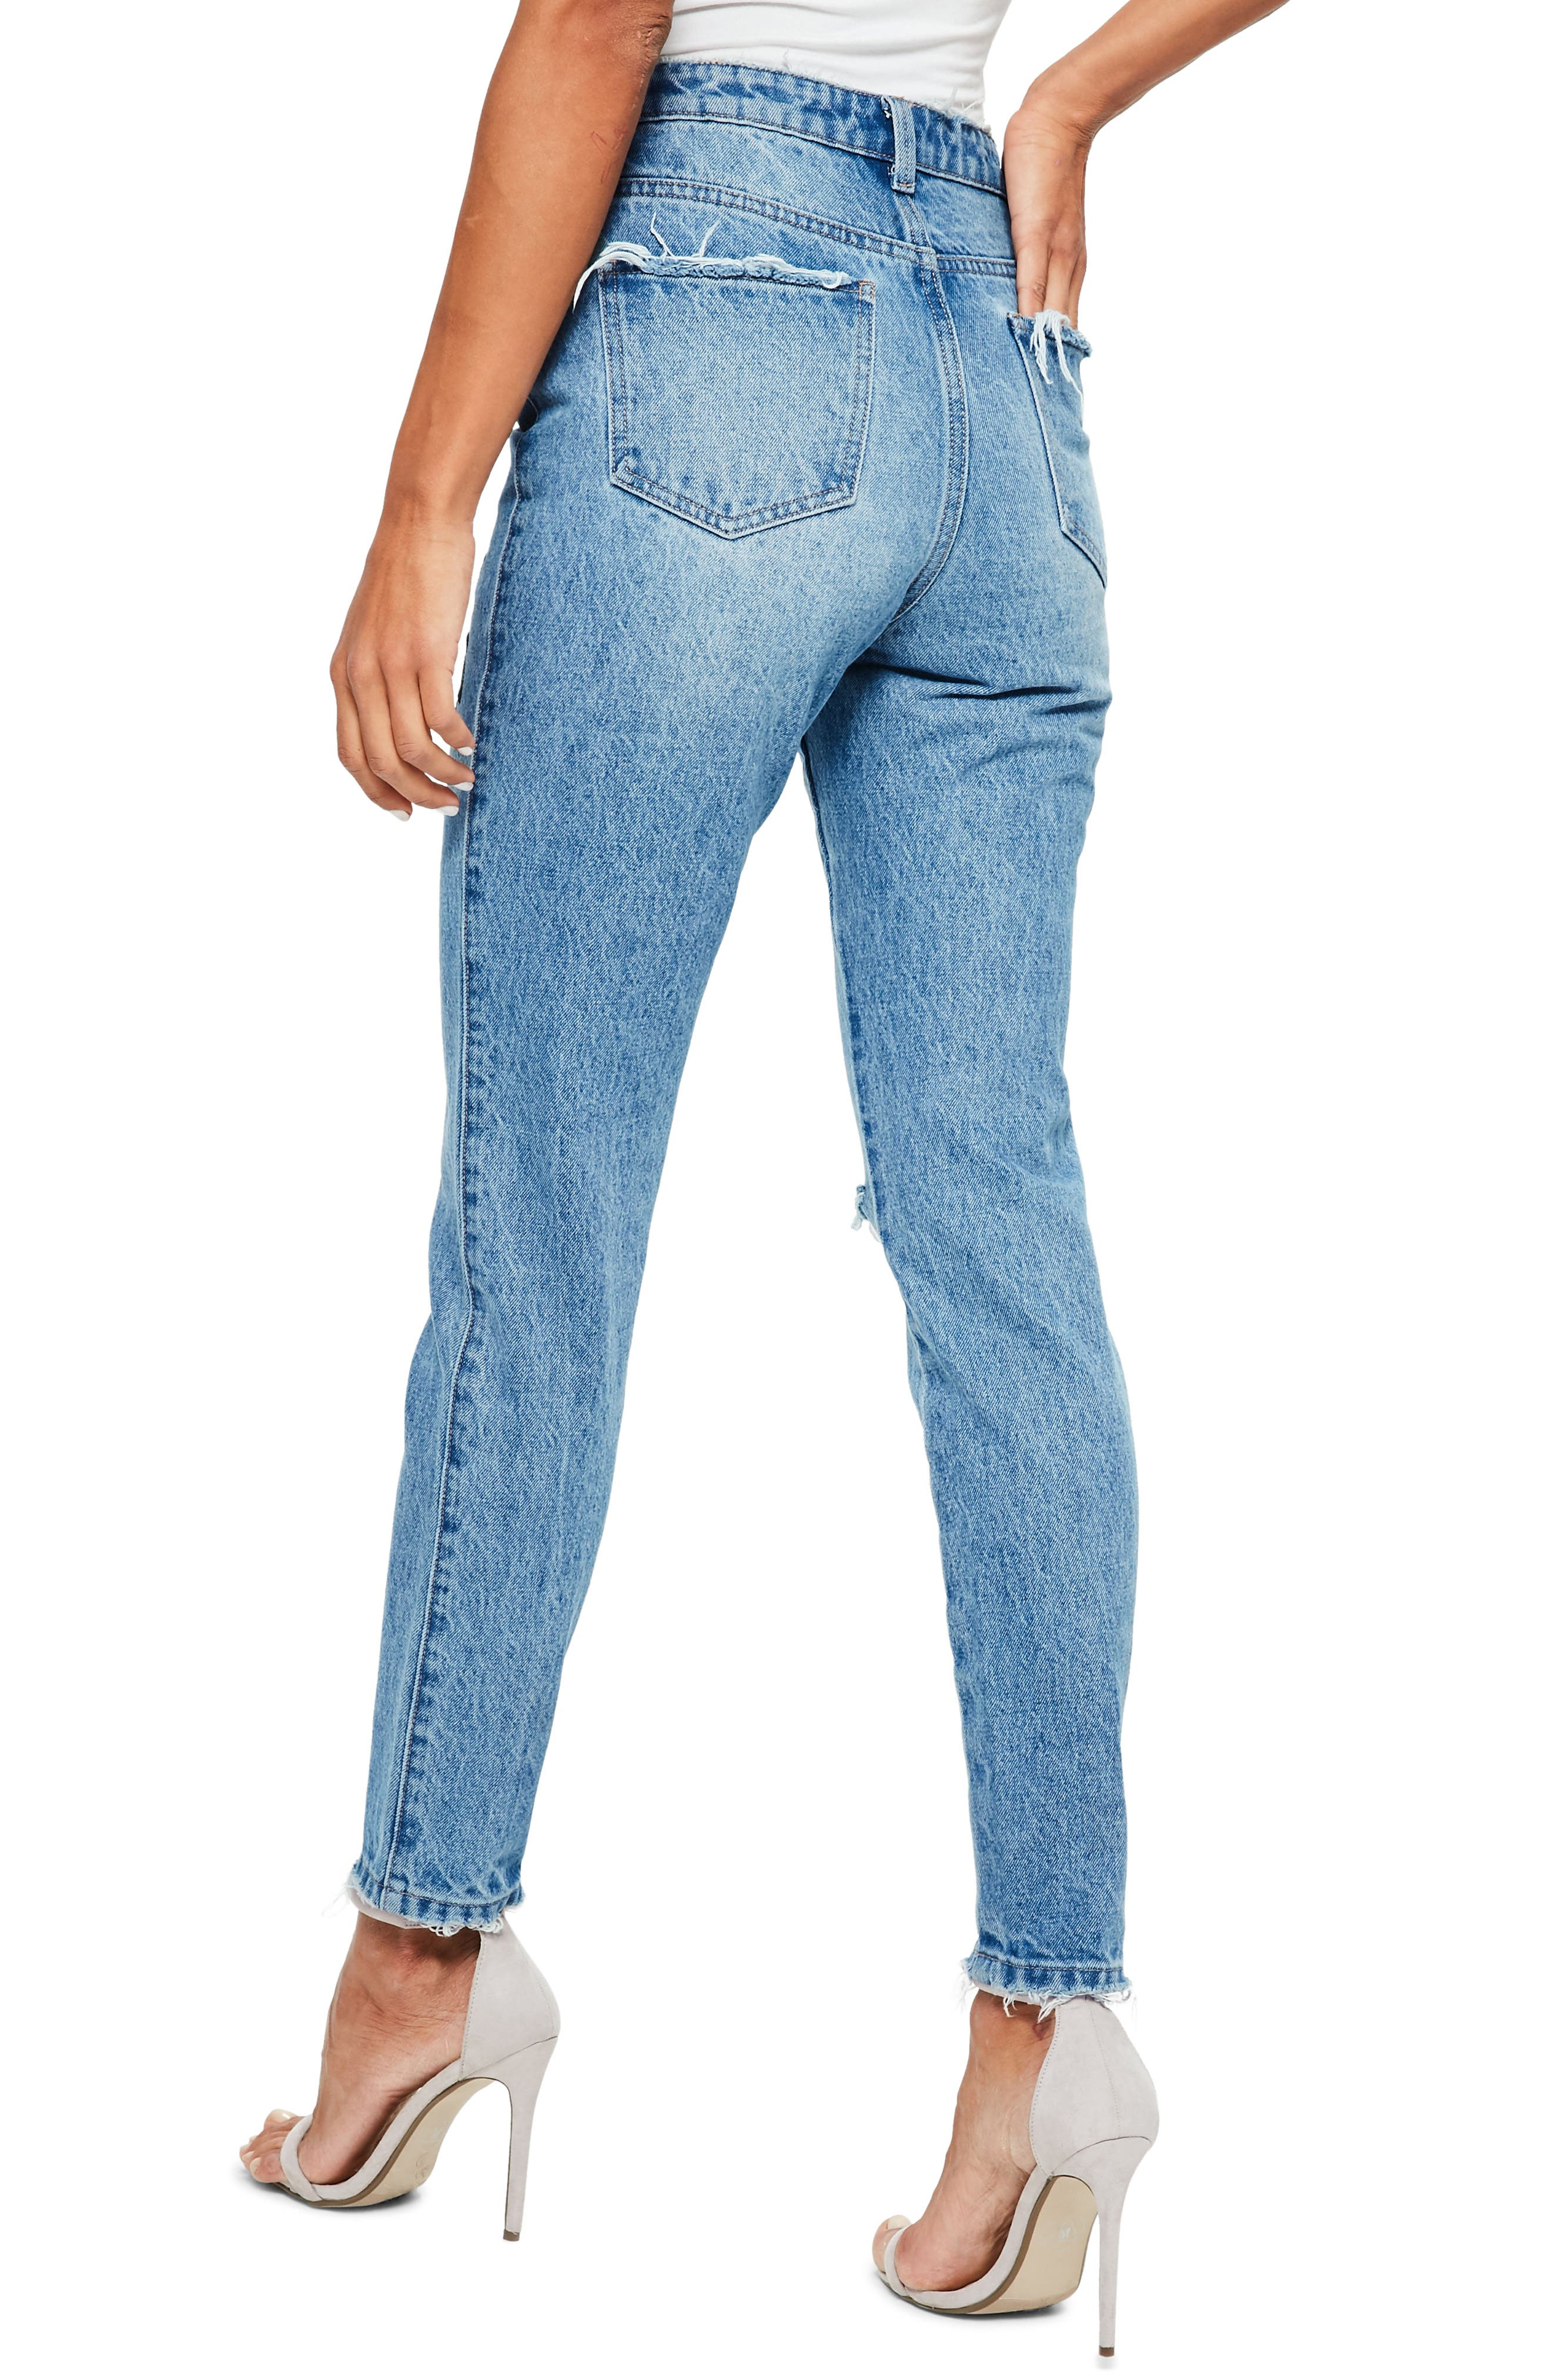 Riot Ripped High Waist Embroidered Jeans,                             Alternate thumbnail 2, color,                             Blue